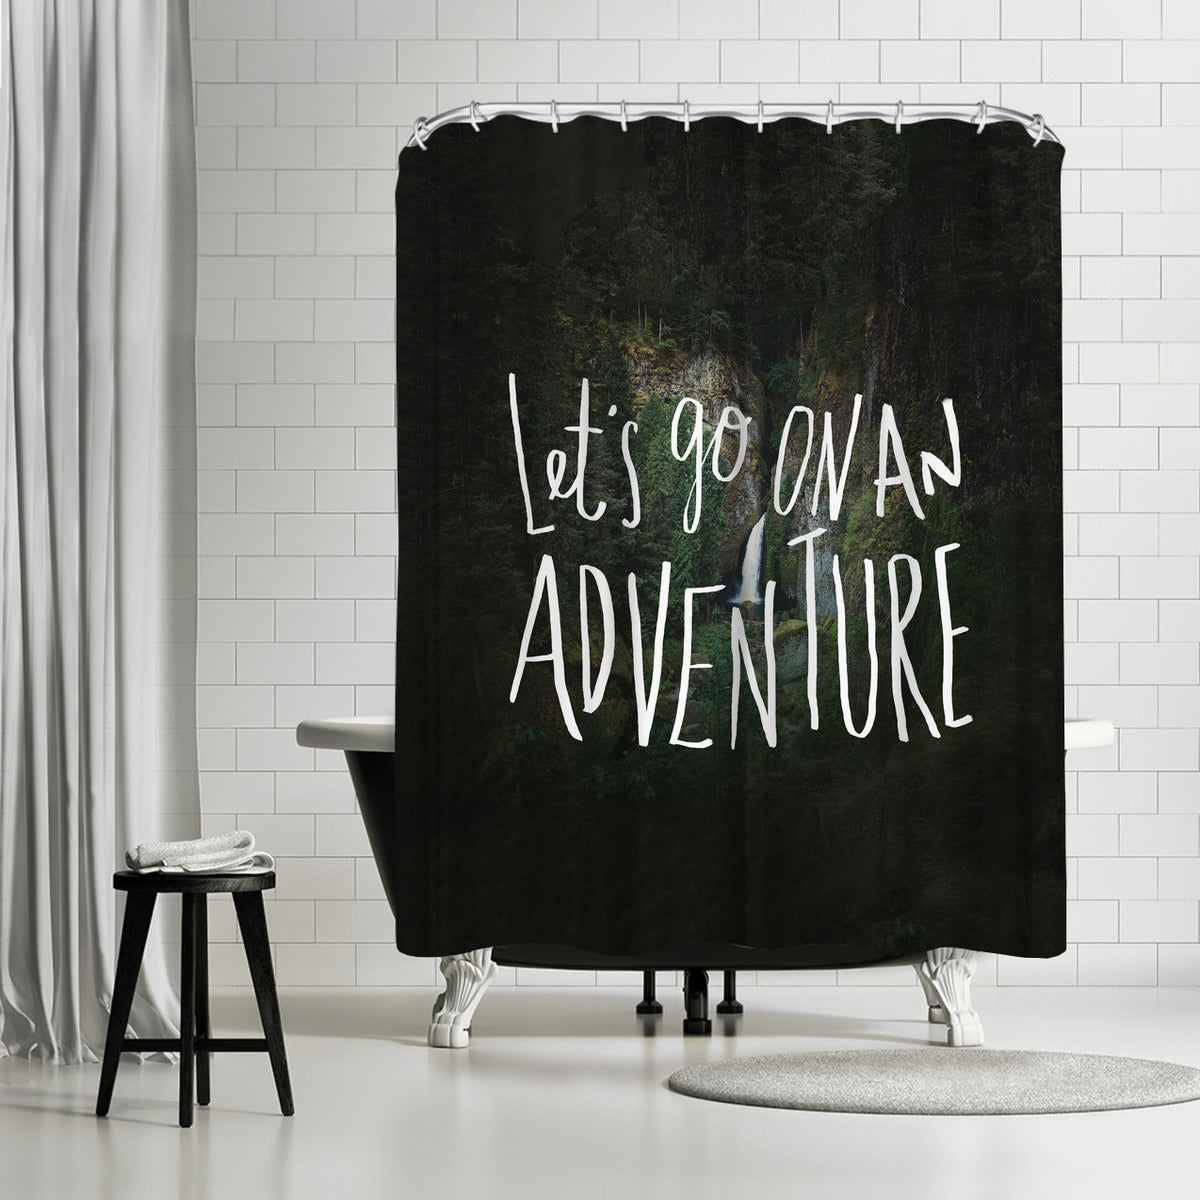 Lets Go On An Adventure by Leah Flores Shower Curtain - Shower Curtain - Americanflat